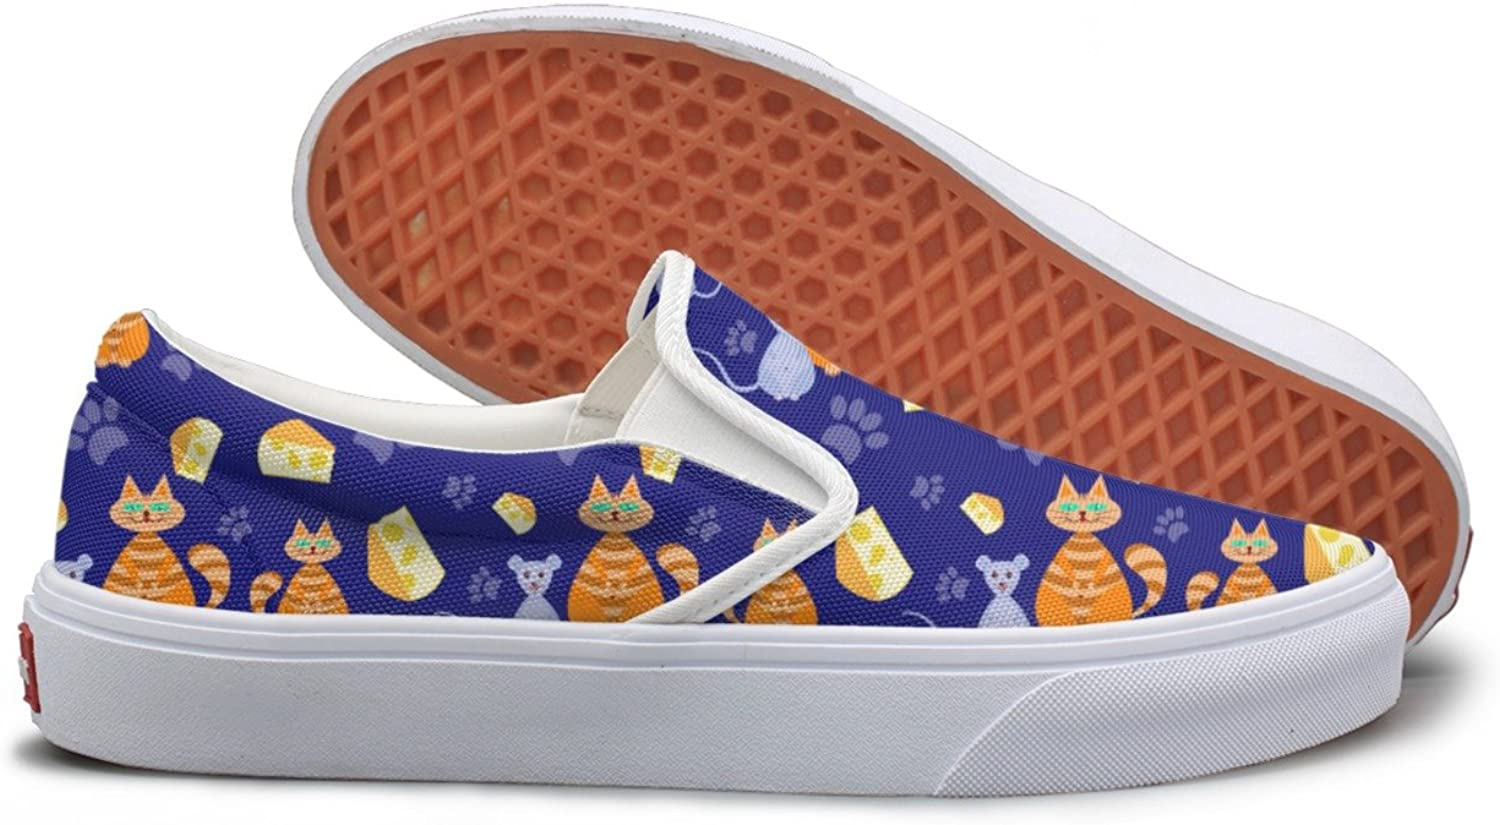 SEERTED Cat and Mice Sandwich bluee Background Youth Sneakers Mesh